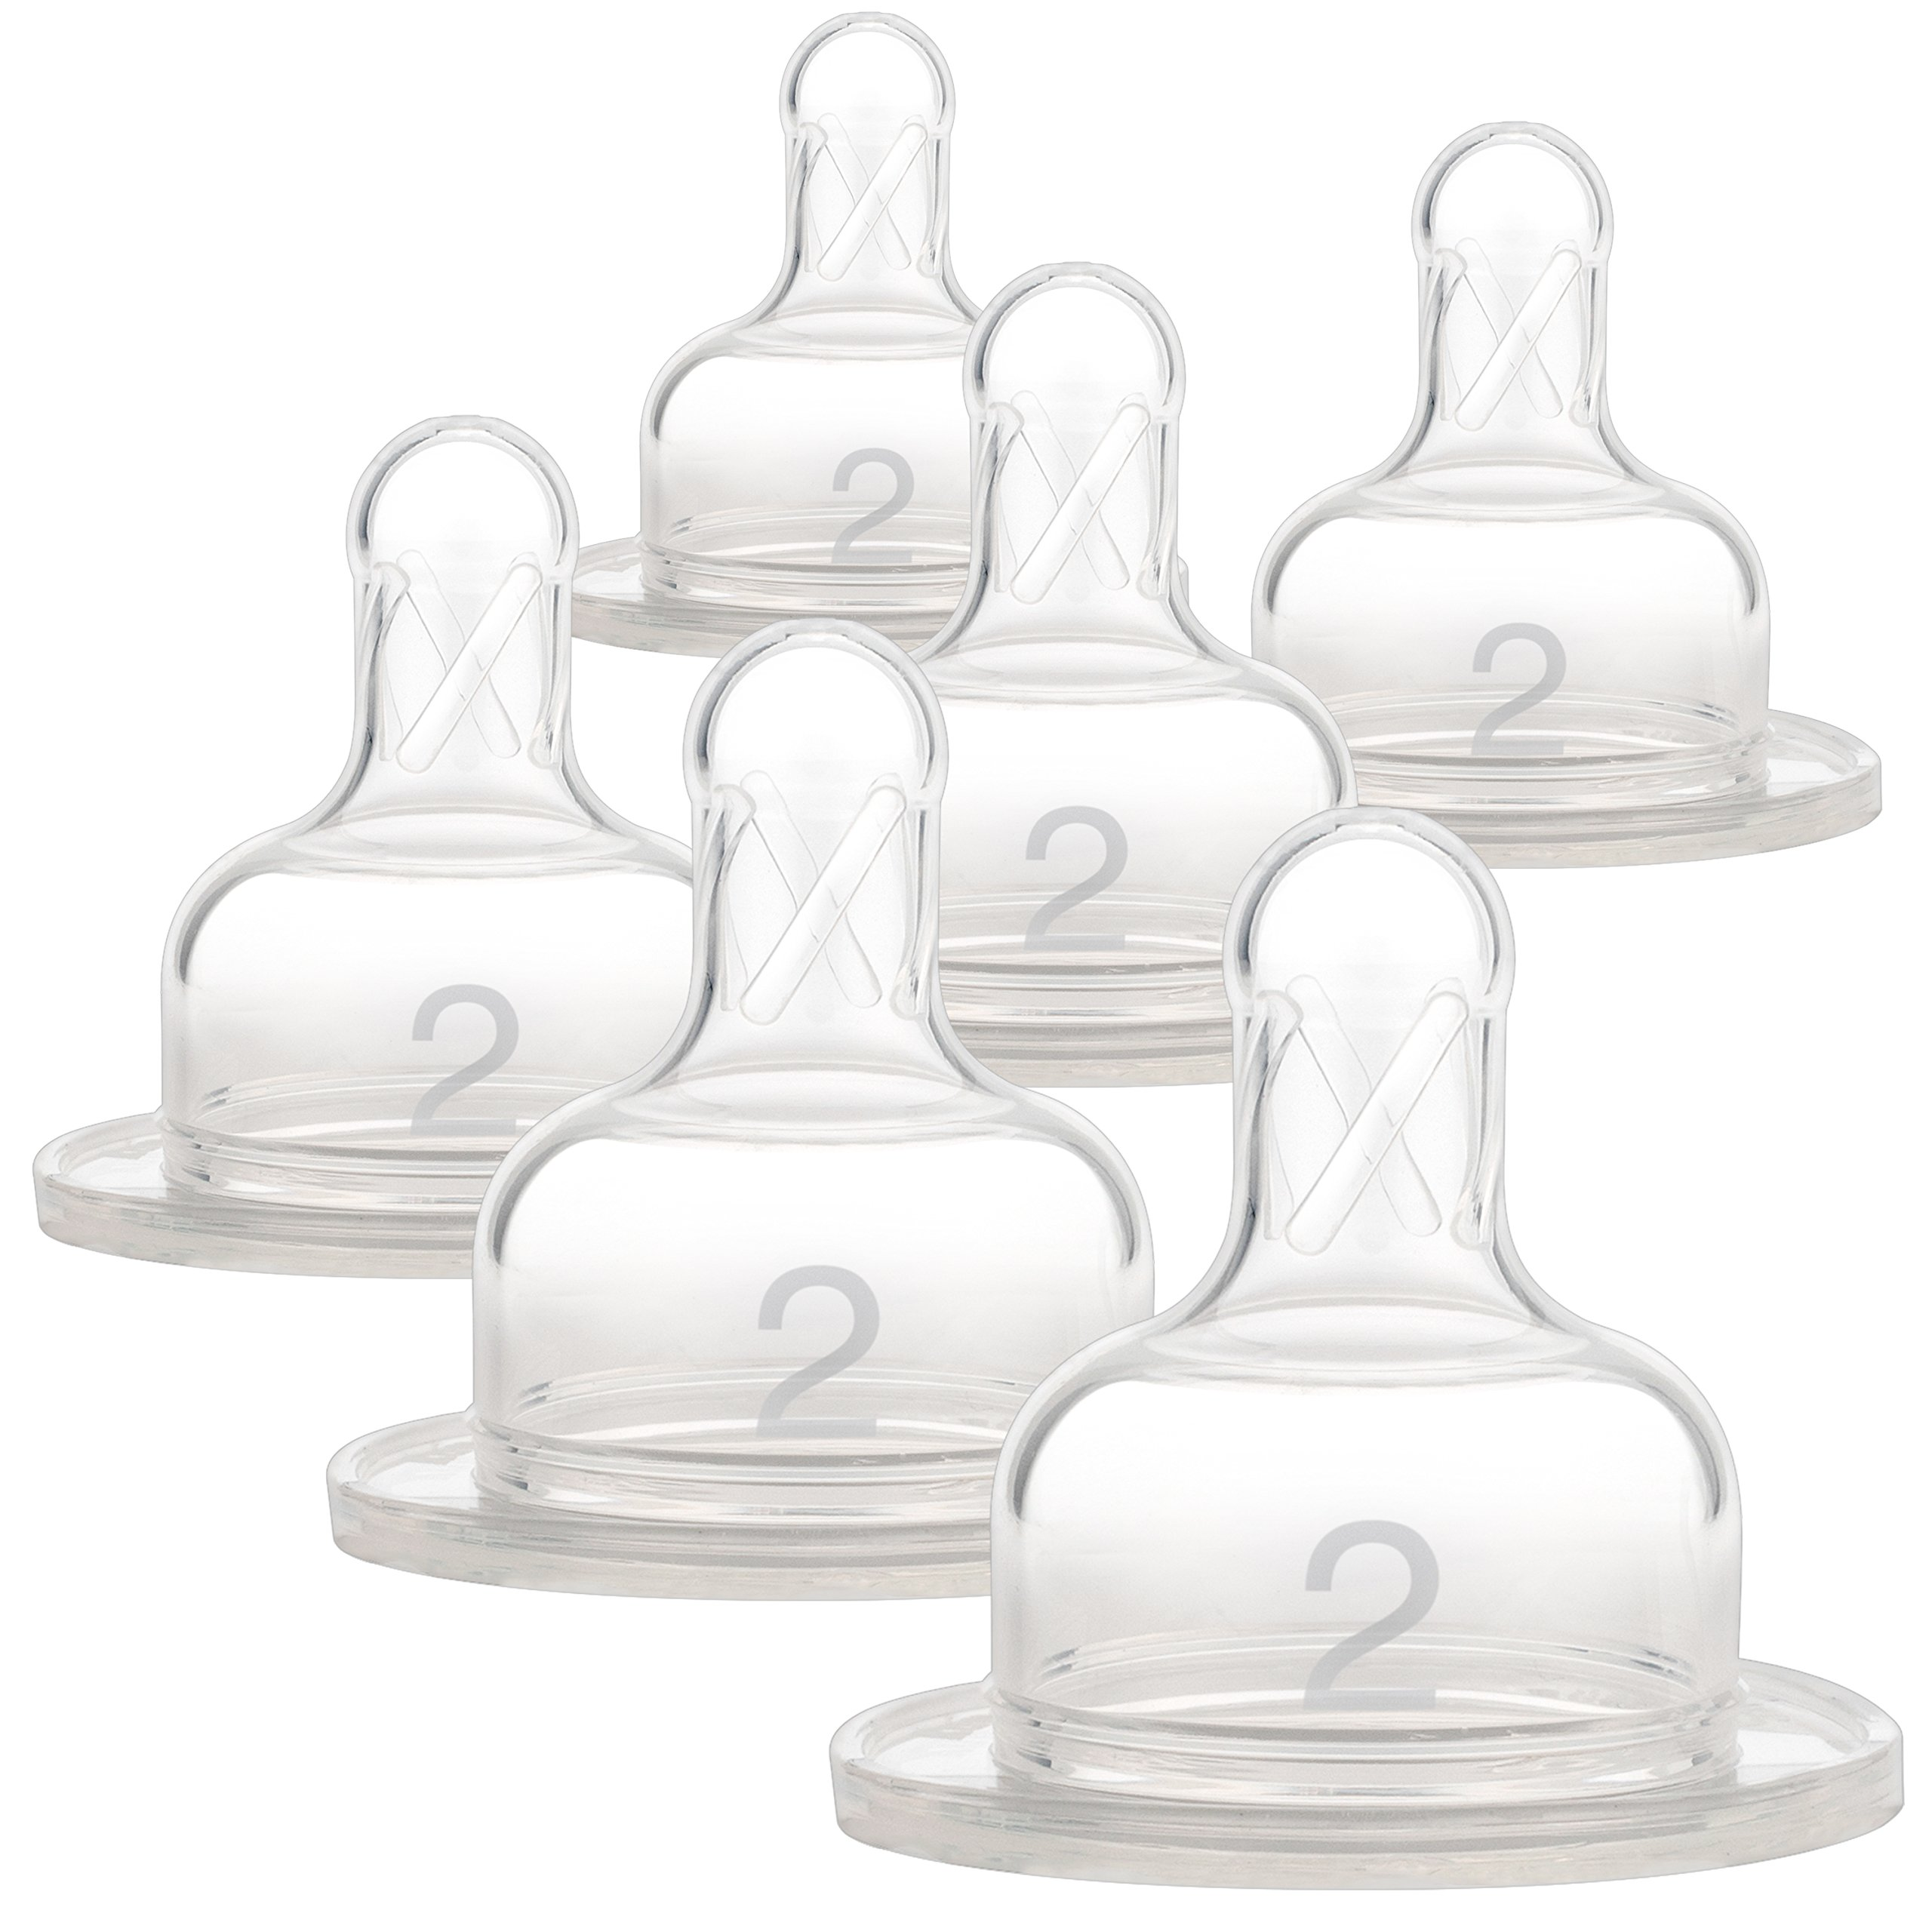 Dr. Brown's Original Wide-Neck Nipple, Level 2 (3m+), 6-Pack by Dr. Brown's